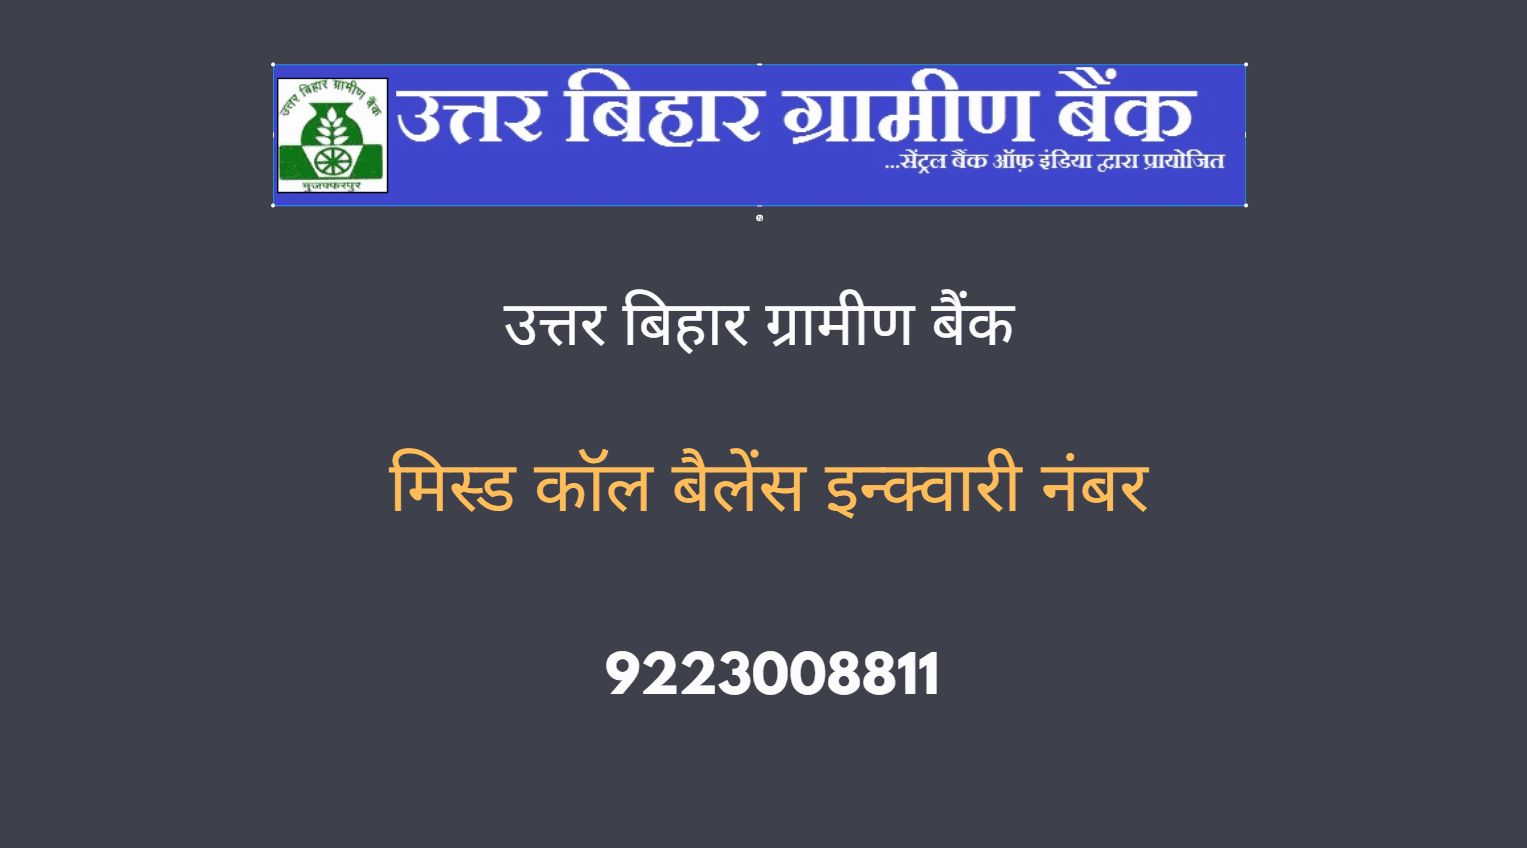 Uttar Bihar Gramin Bank missed call balance enquiry number